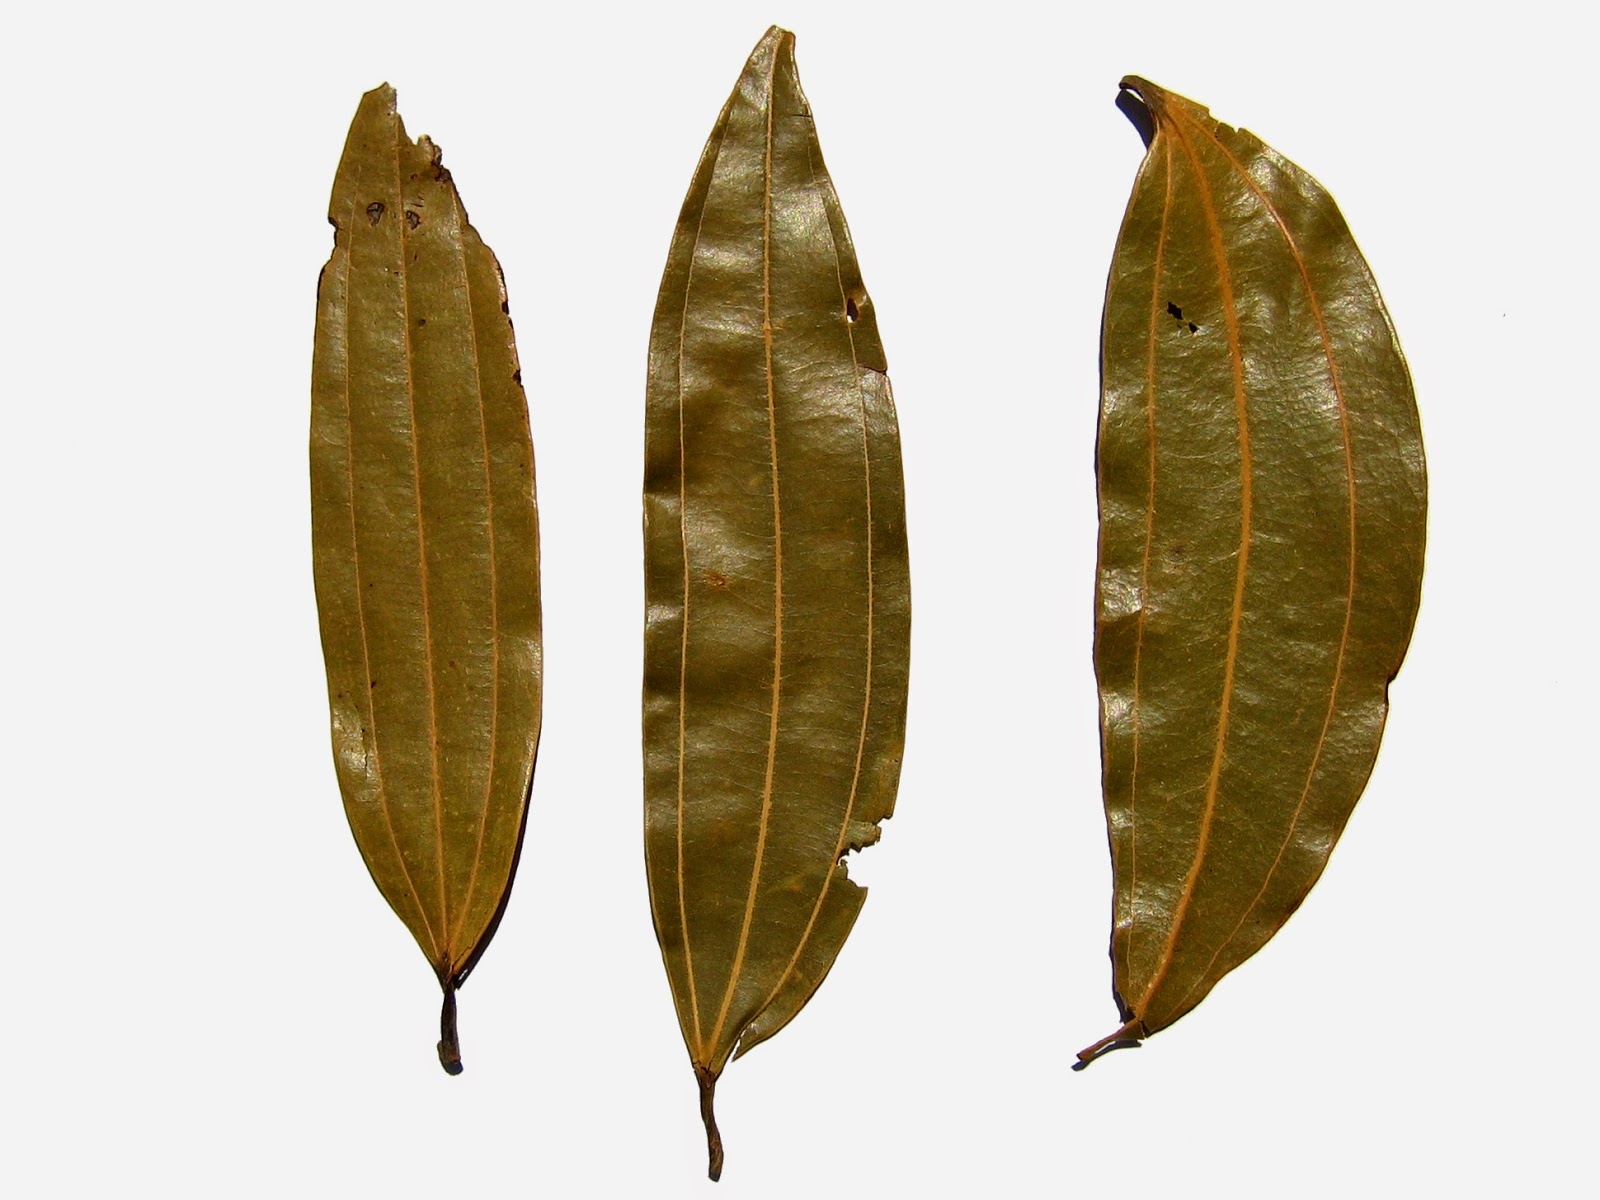 Benefits of Bay Leaf